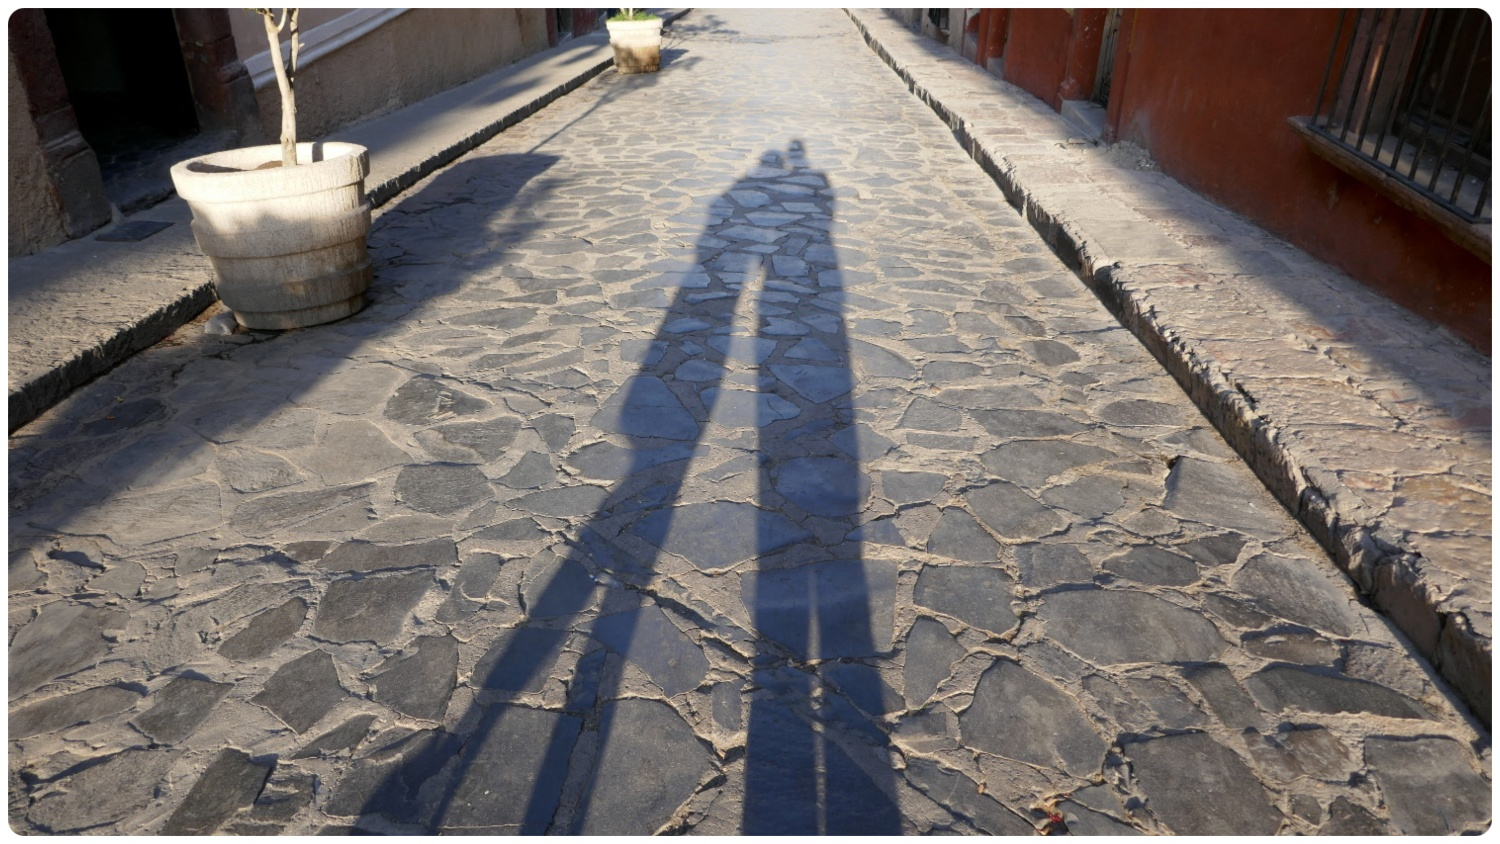 """Our shadows on a cobblestone street in San Miguel de Allende, Mexico. Shannon - """"So romantic!"""" Sergio -"""" We're doing this pic again?"""""""